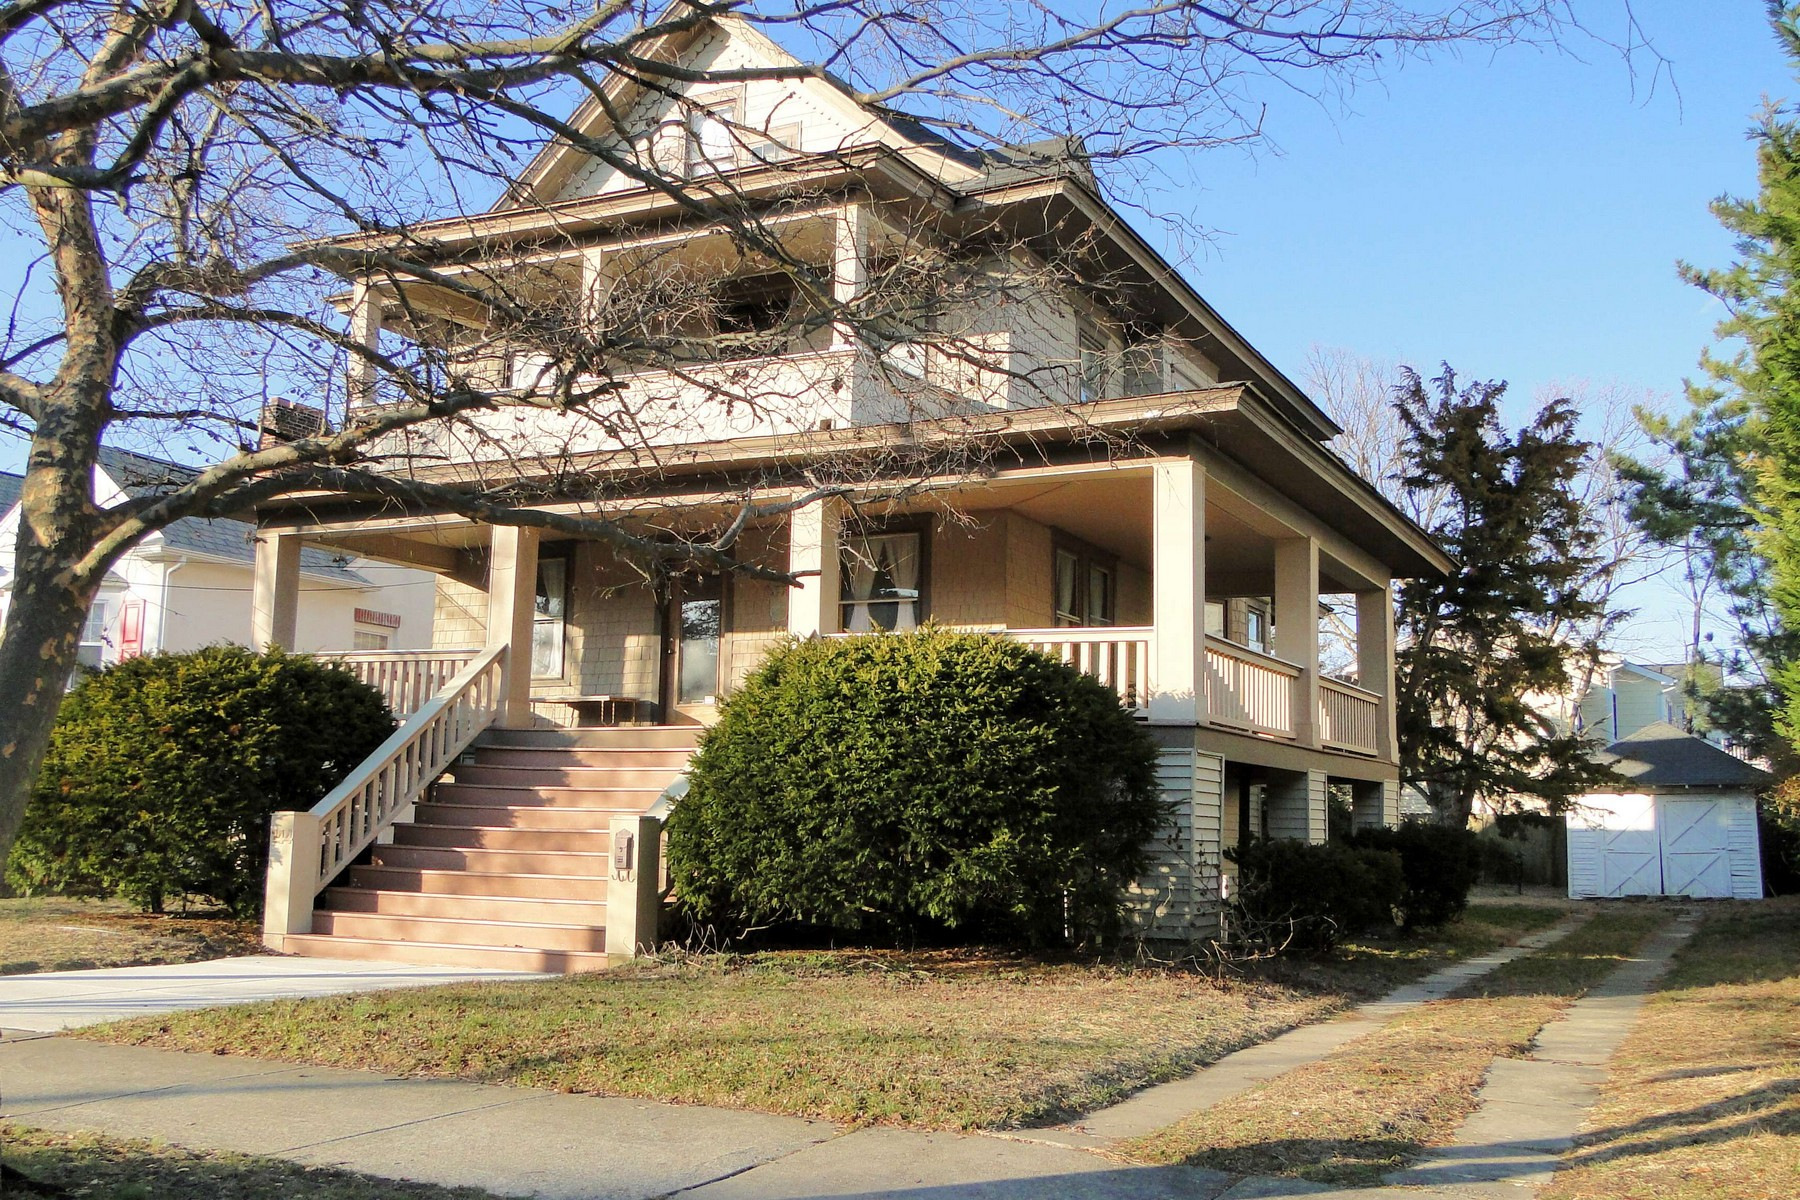 獨棟家庭住宅 為 出售 在 Beautiful Vintage Home 144 E. Atlantic Boulevard Ocean City, 新澤西州 08226 美國